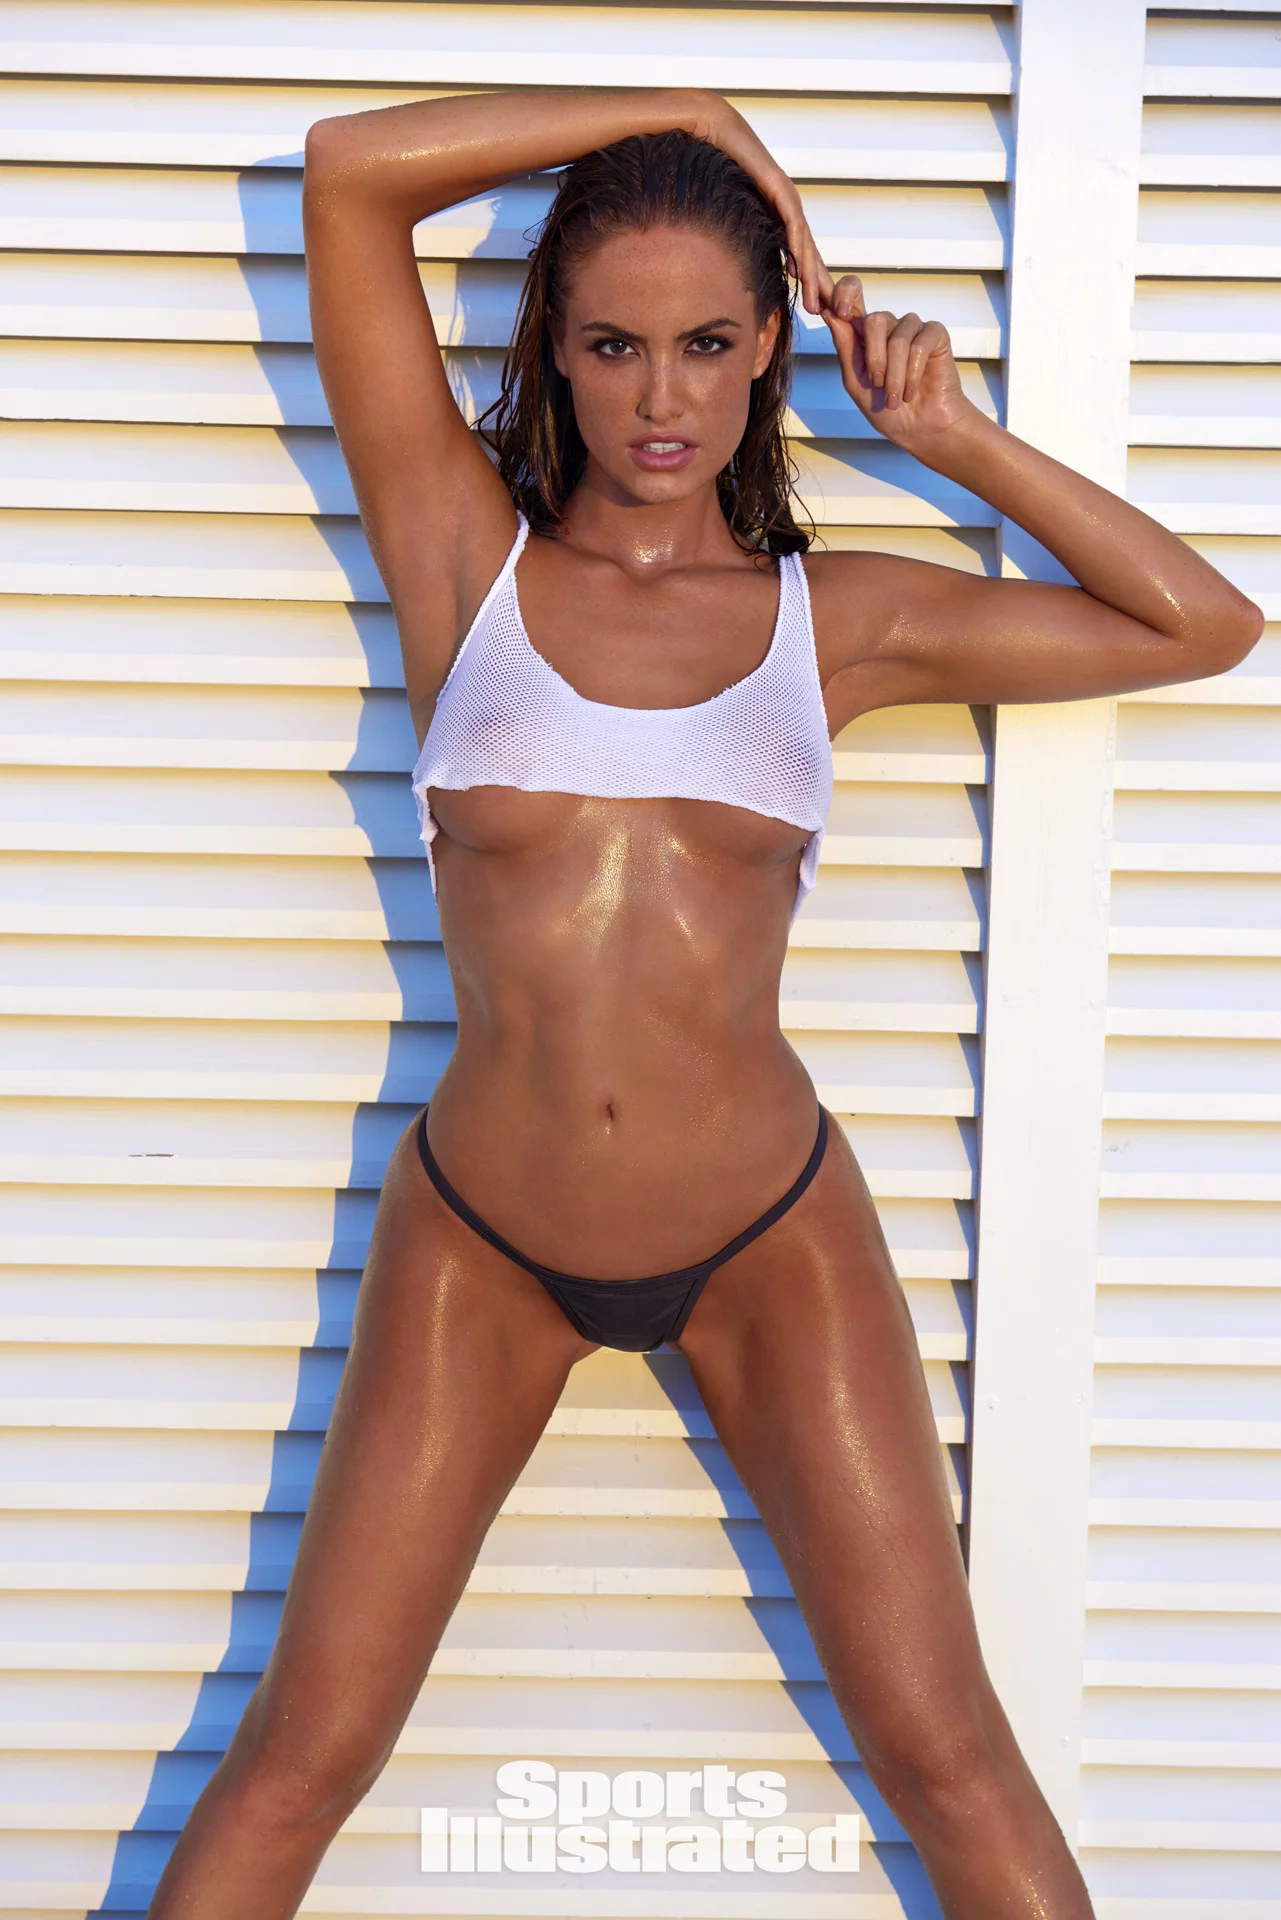 Haley Kalil for Sports Illustrated Swimsuit Issue 2018